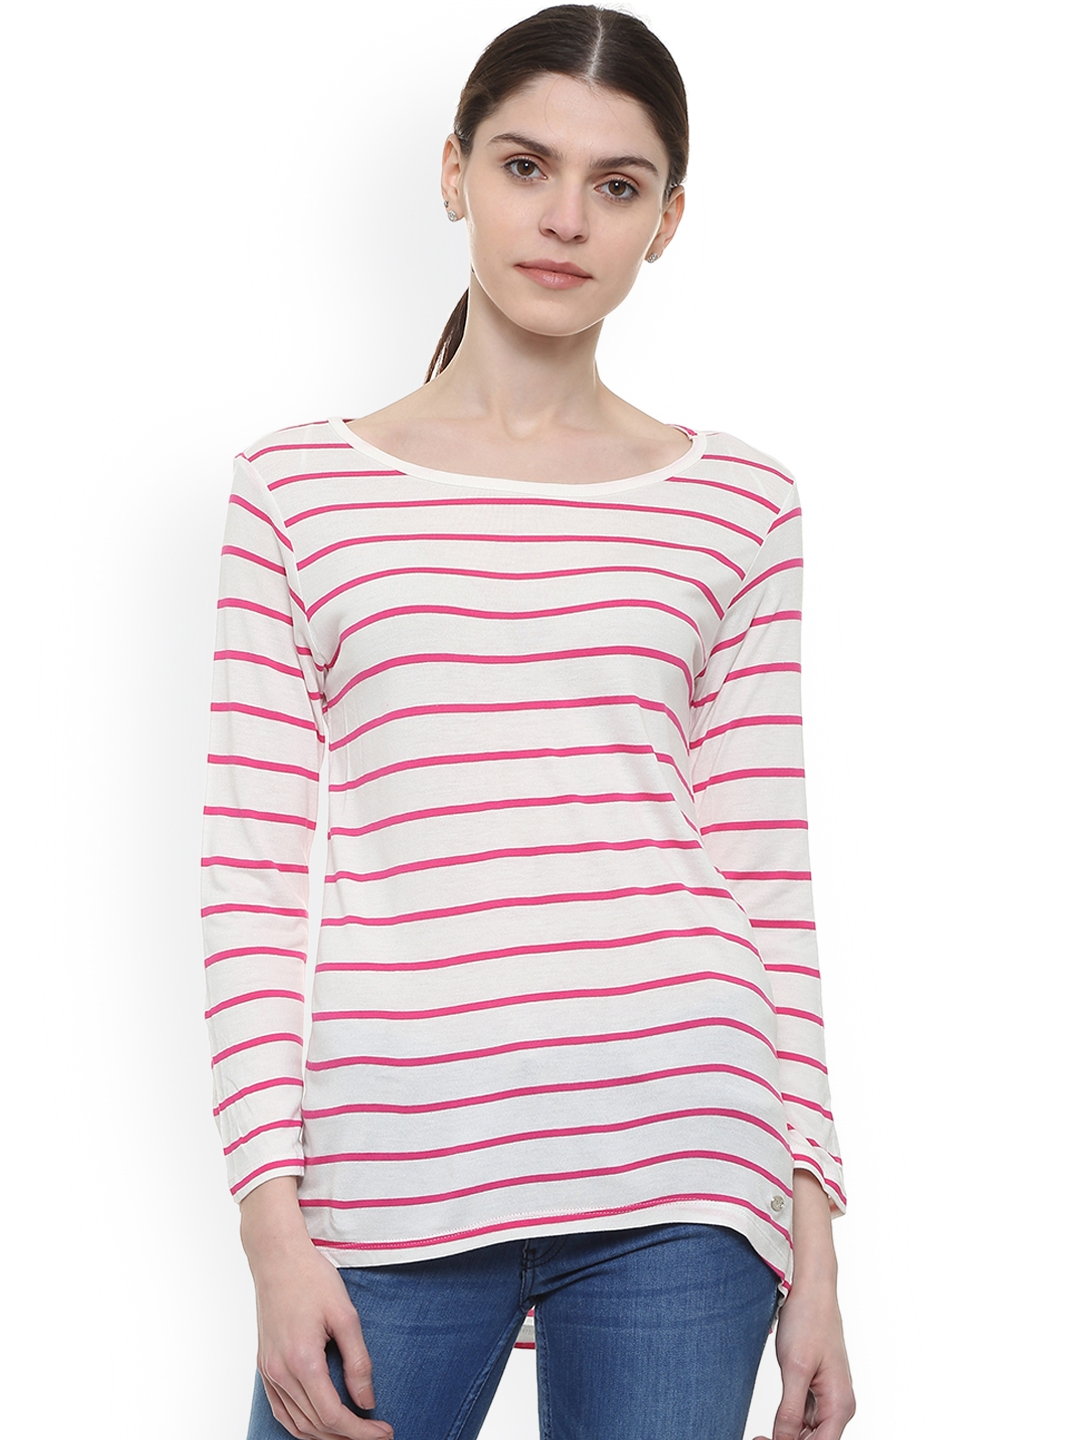 Allen Solly Woman Women Pink   off White Striped Top